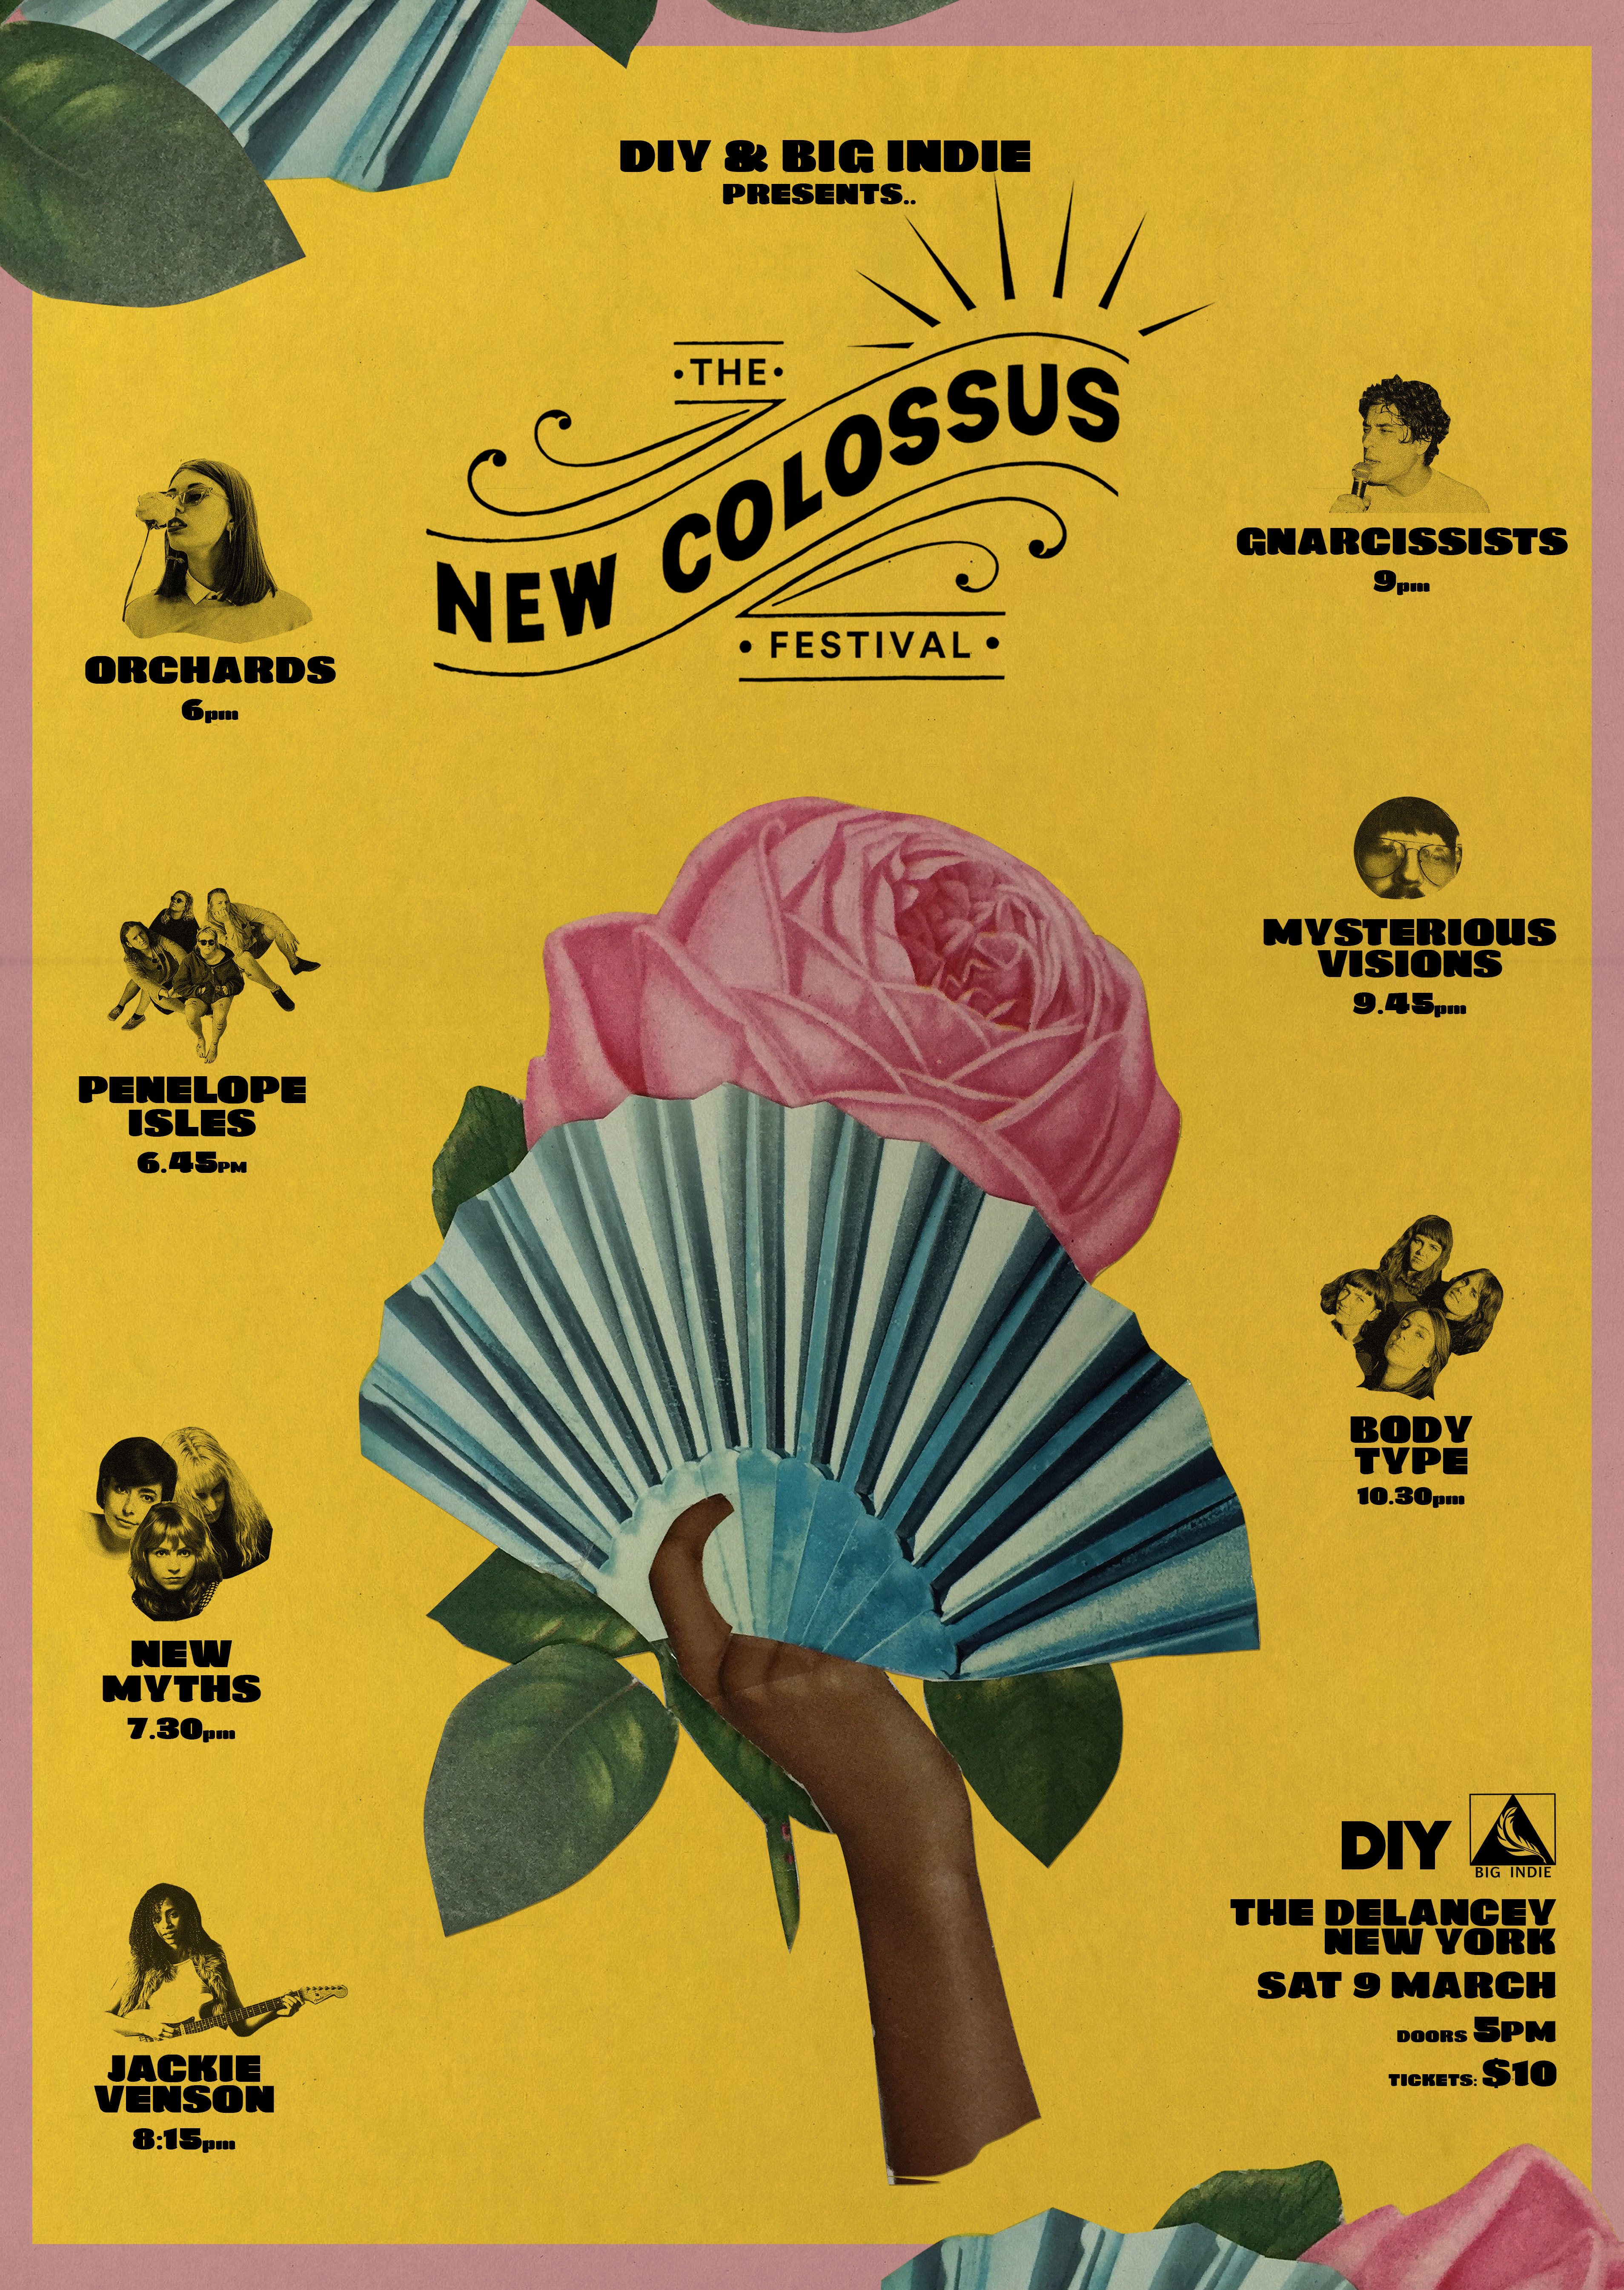 Whenyoung, Body Type, Penelope Isles and more to play the DIY/ Big Indie stage at New York's New Colossus next month